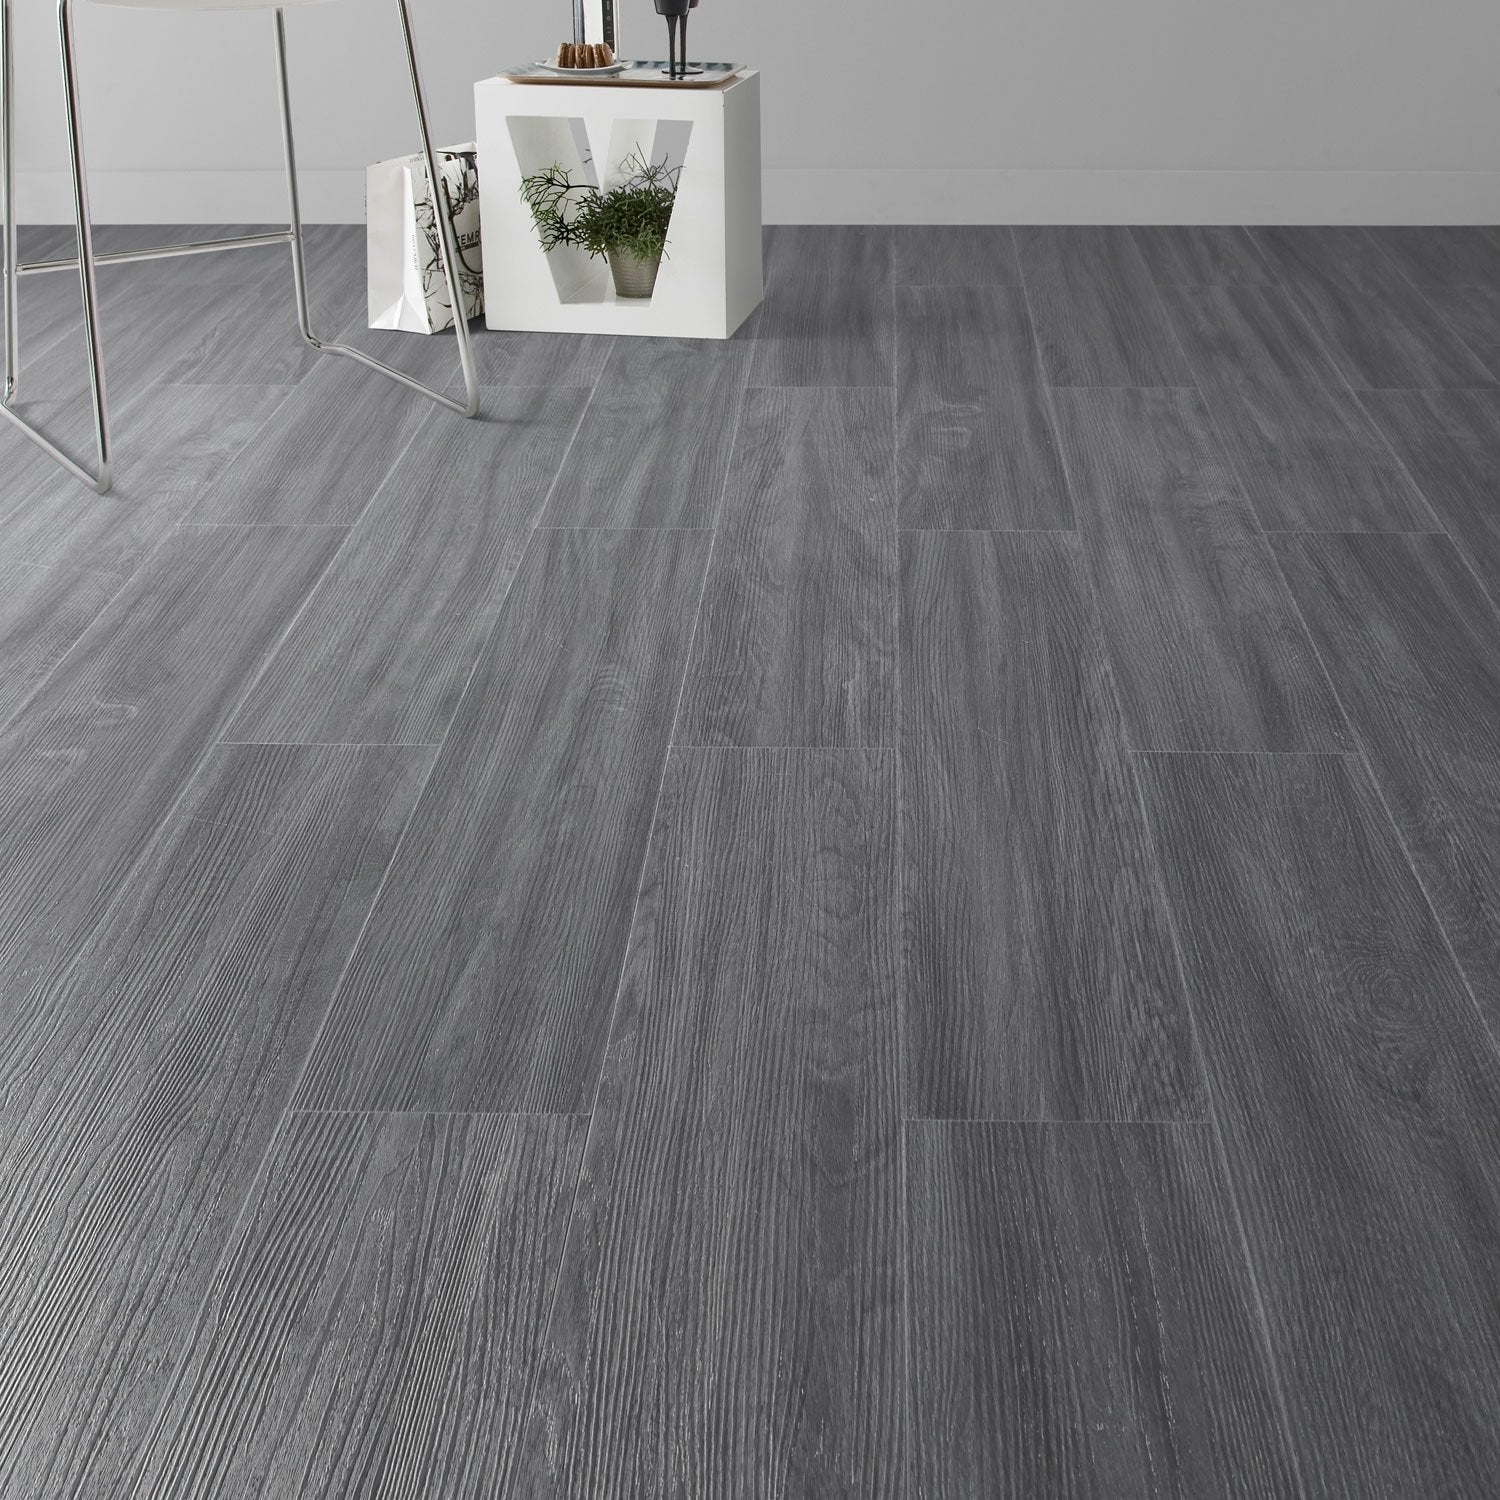 Lame pvc clipsable gris anthracite camden artens leroy merlin - Carrelage clipsable leroy merlin ...